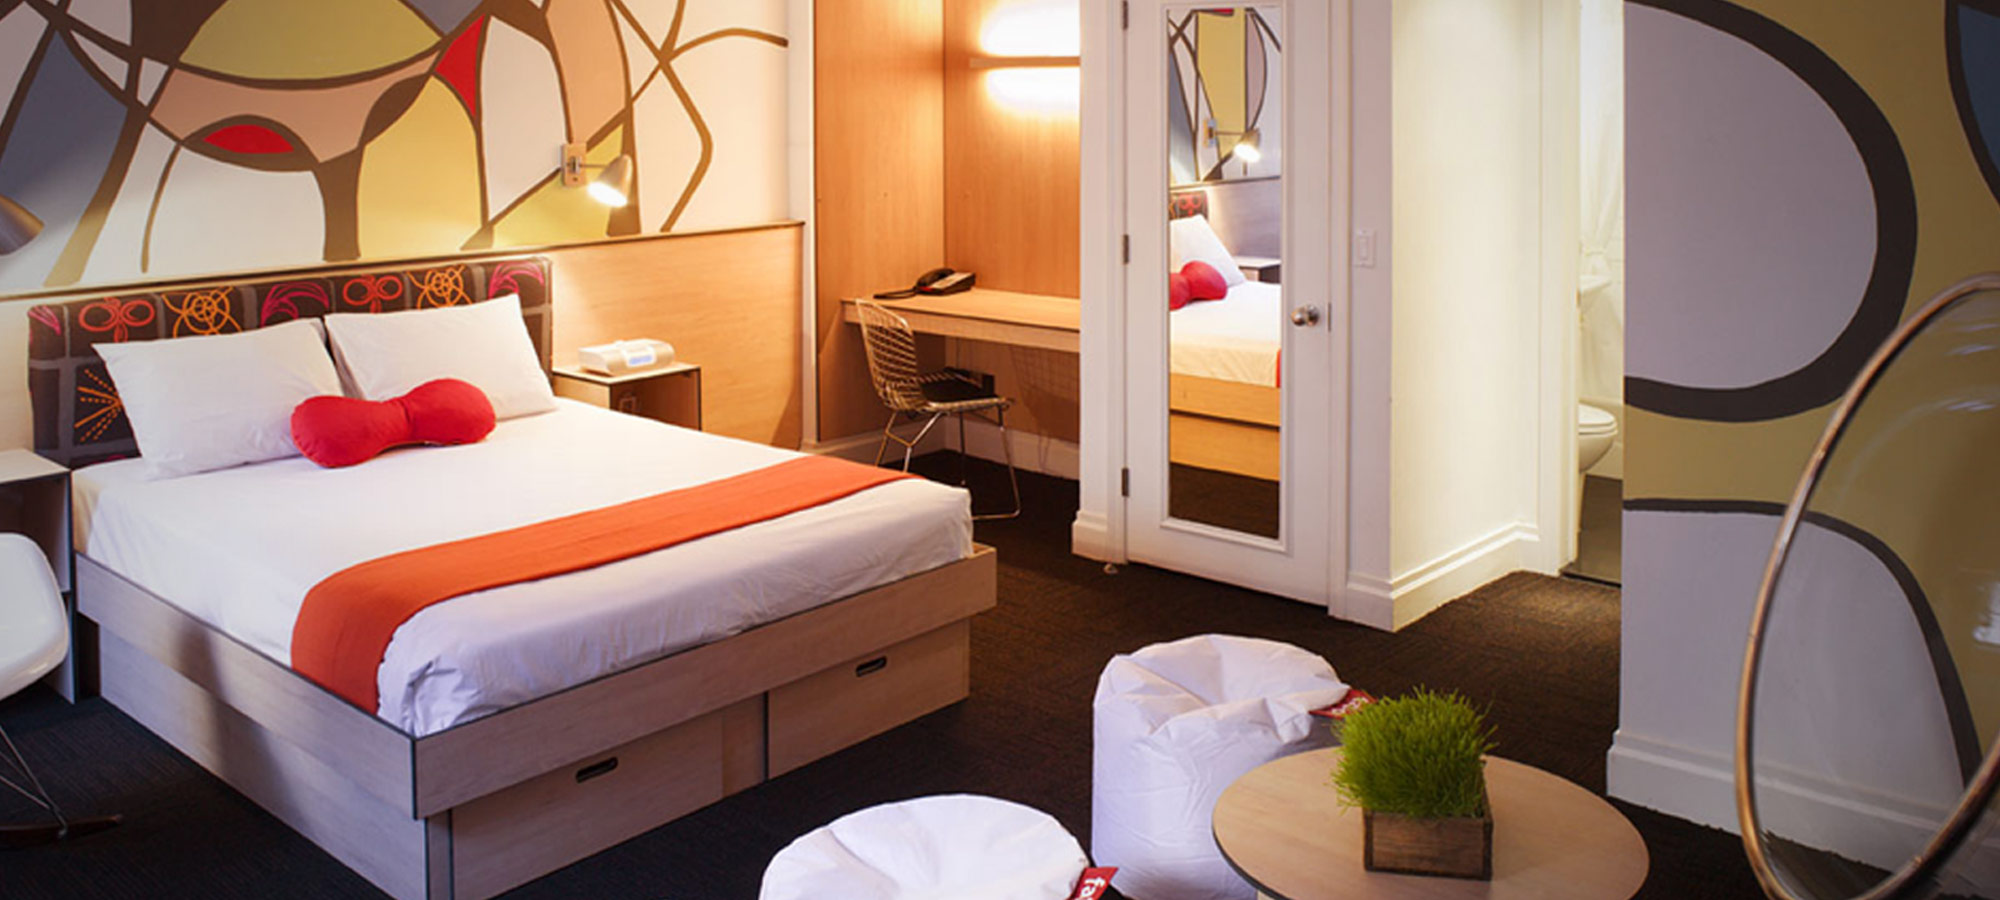 Room hotel for Hotels rooms